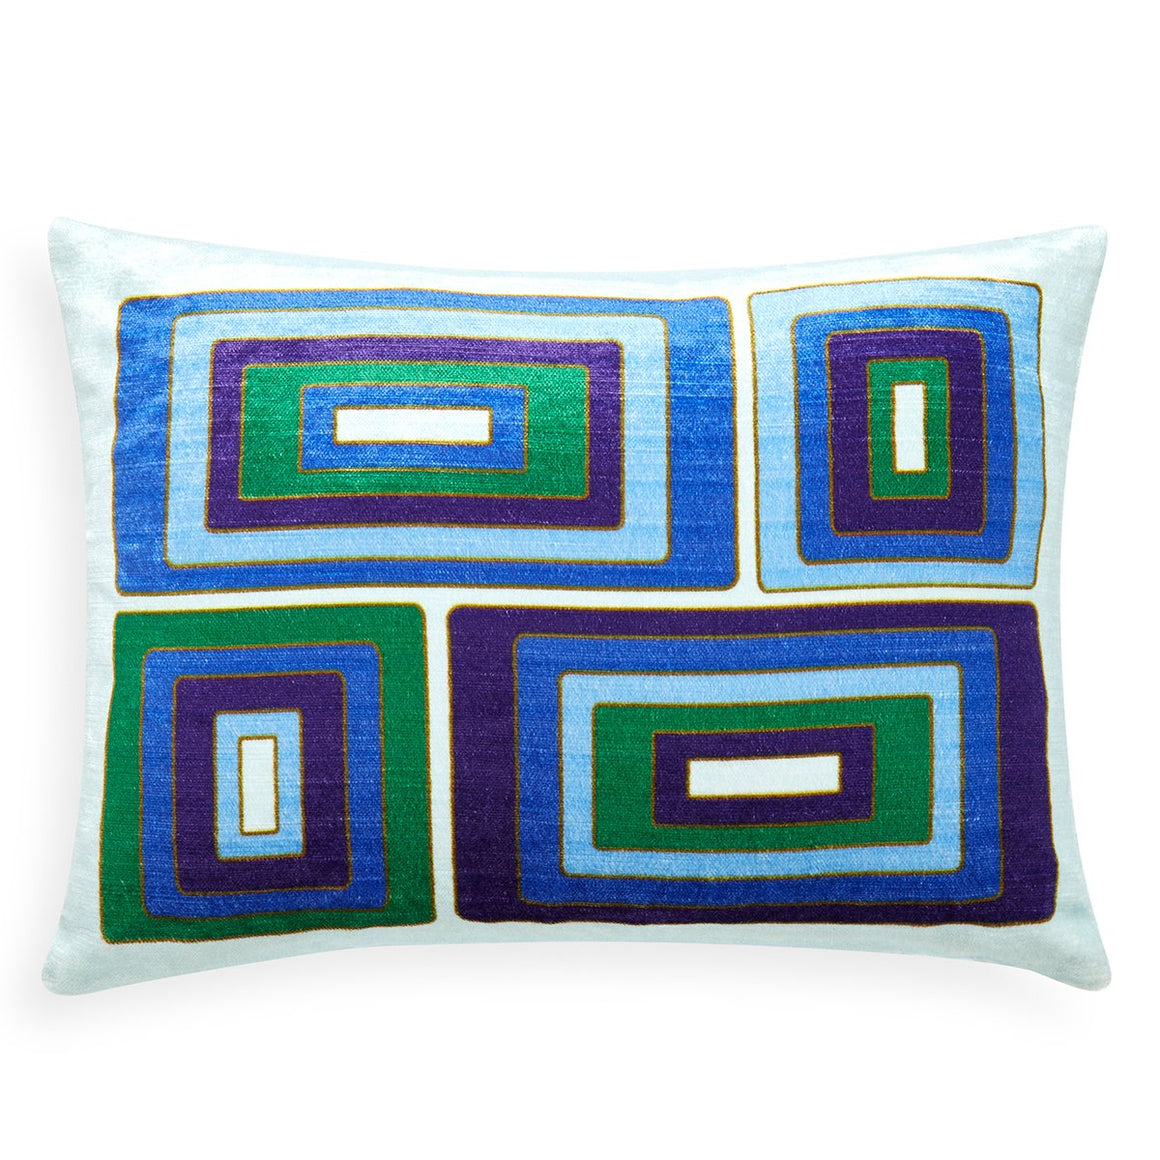 Emerald / Navy Milano Blocks Pillow